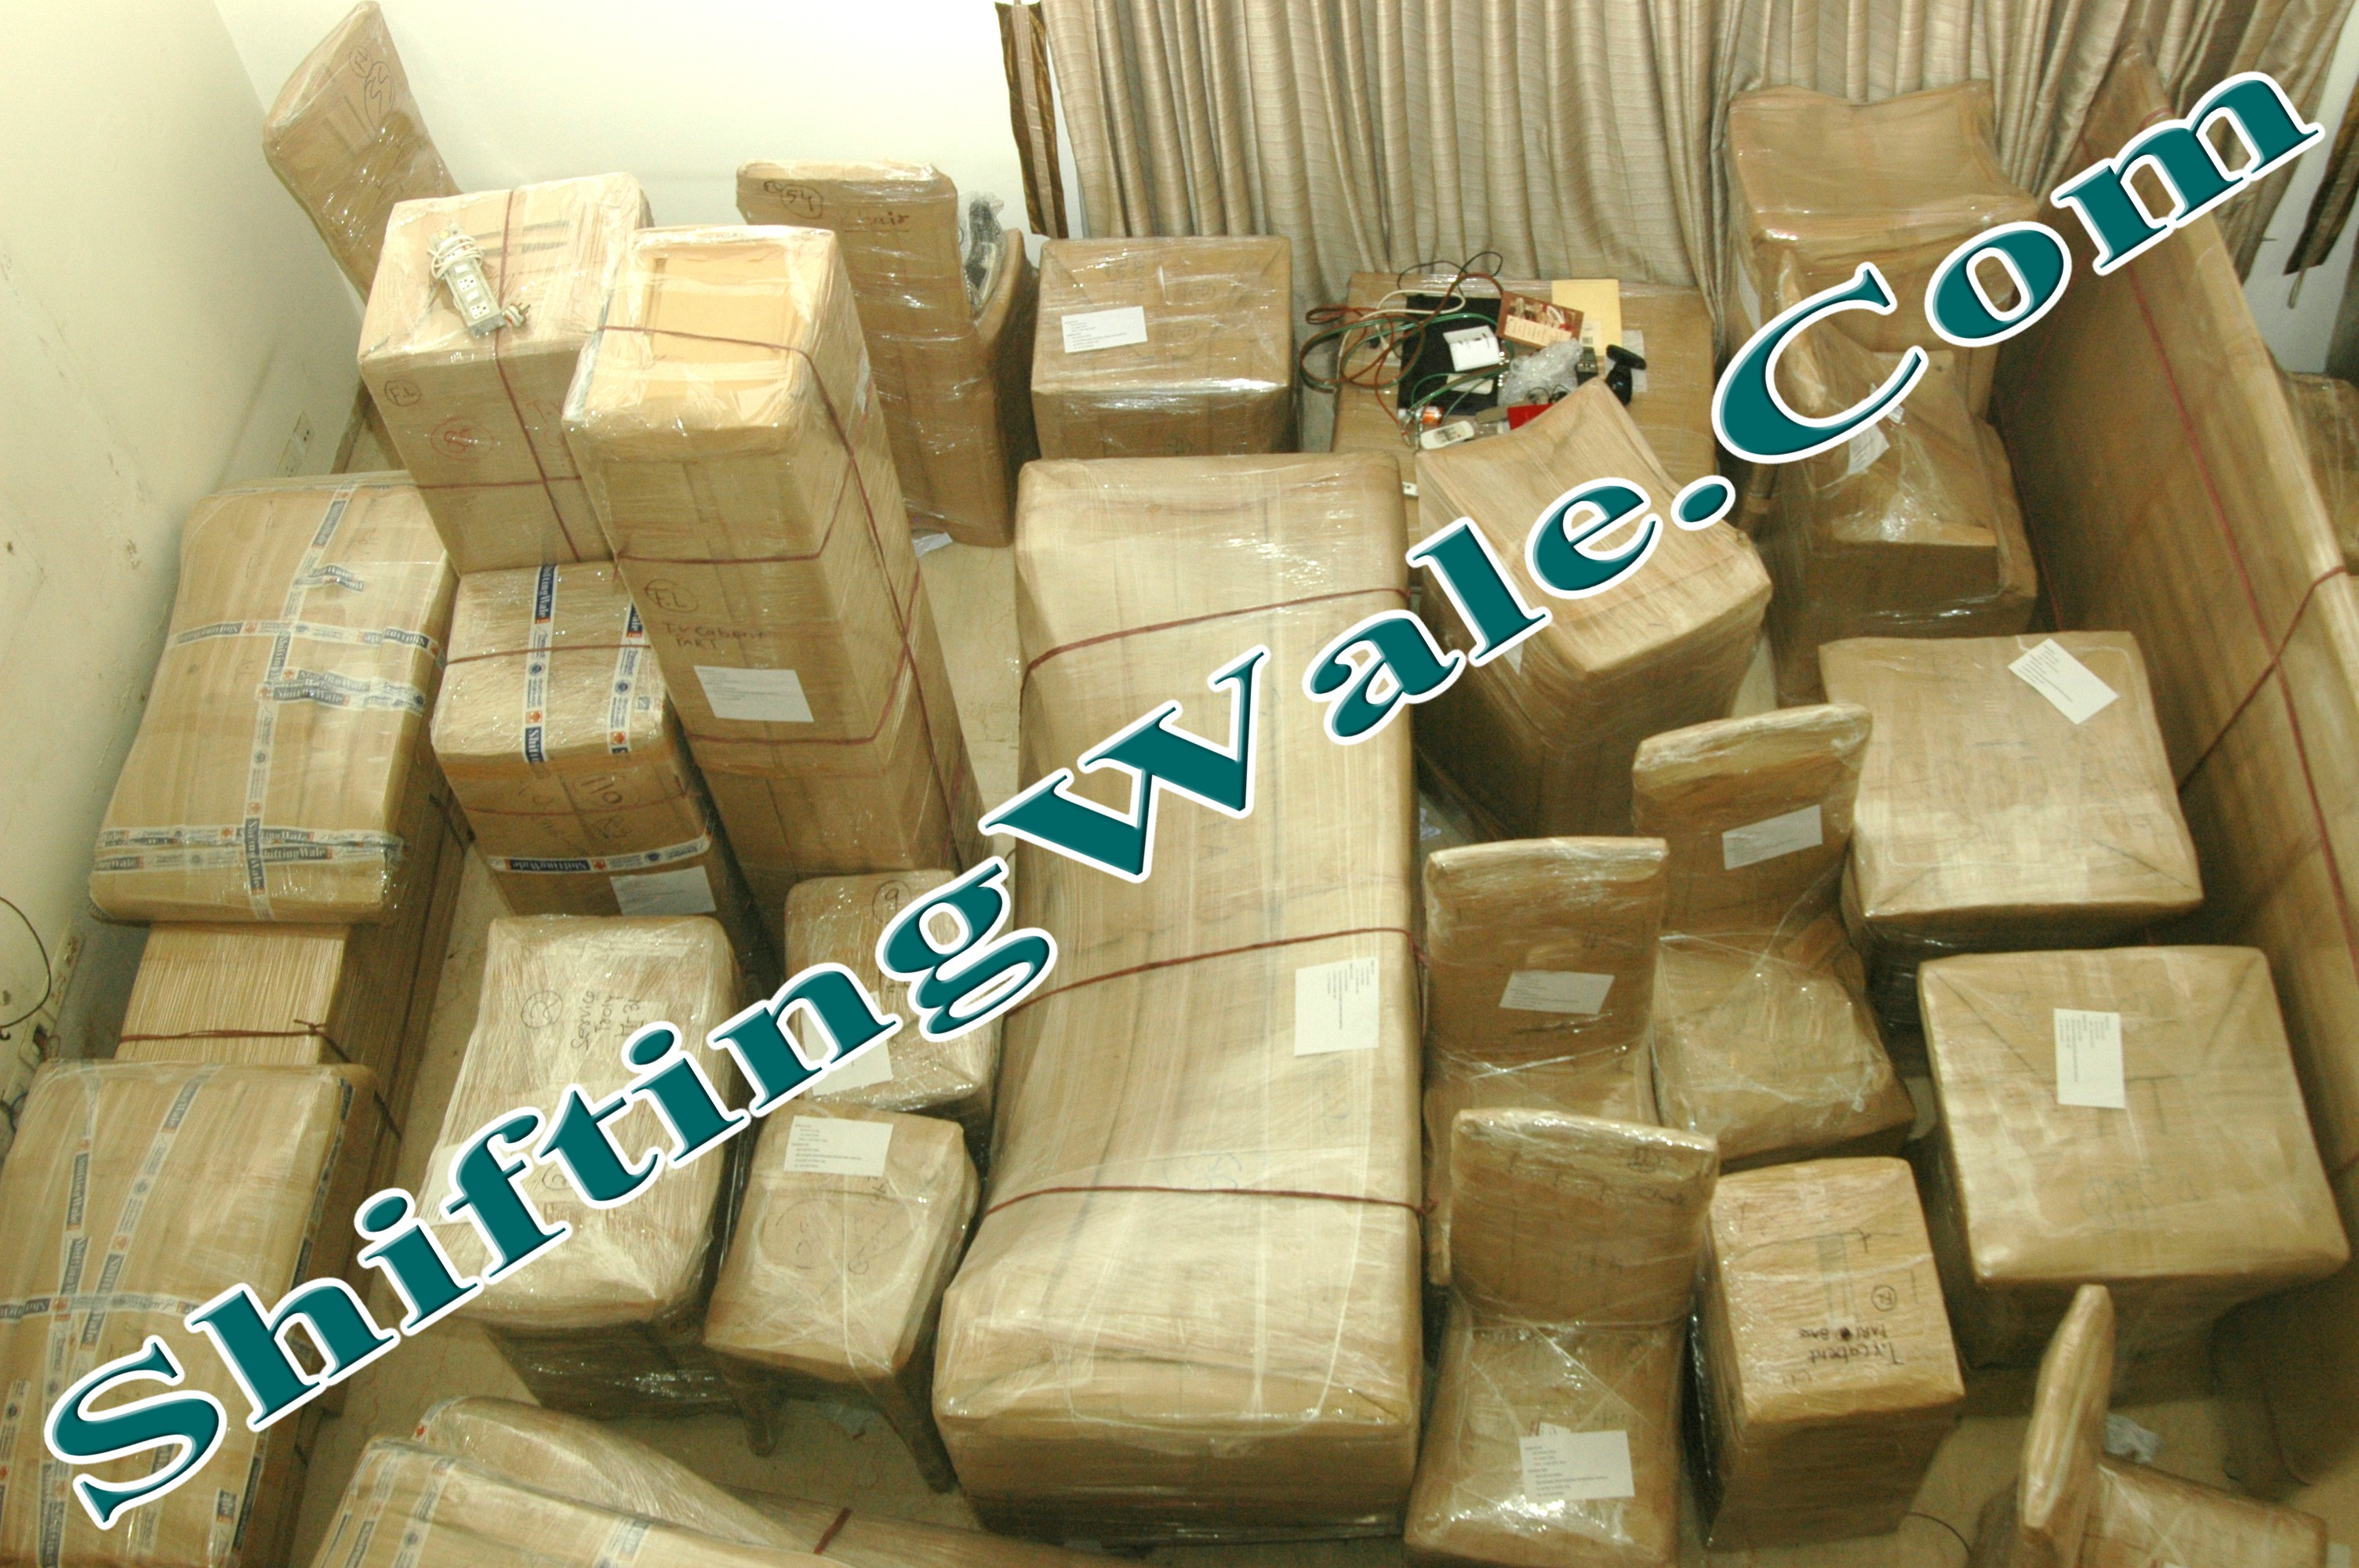 Goa To Guwahati Packers and Movers Get Free Quotation with Best Price